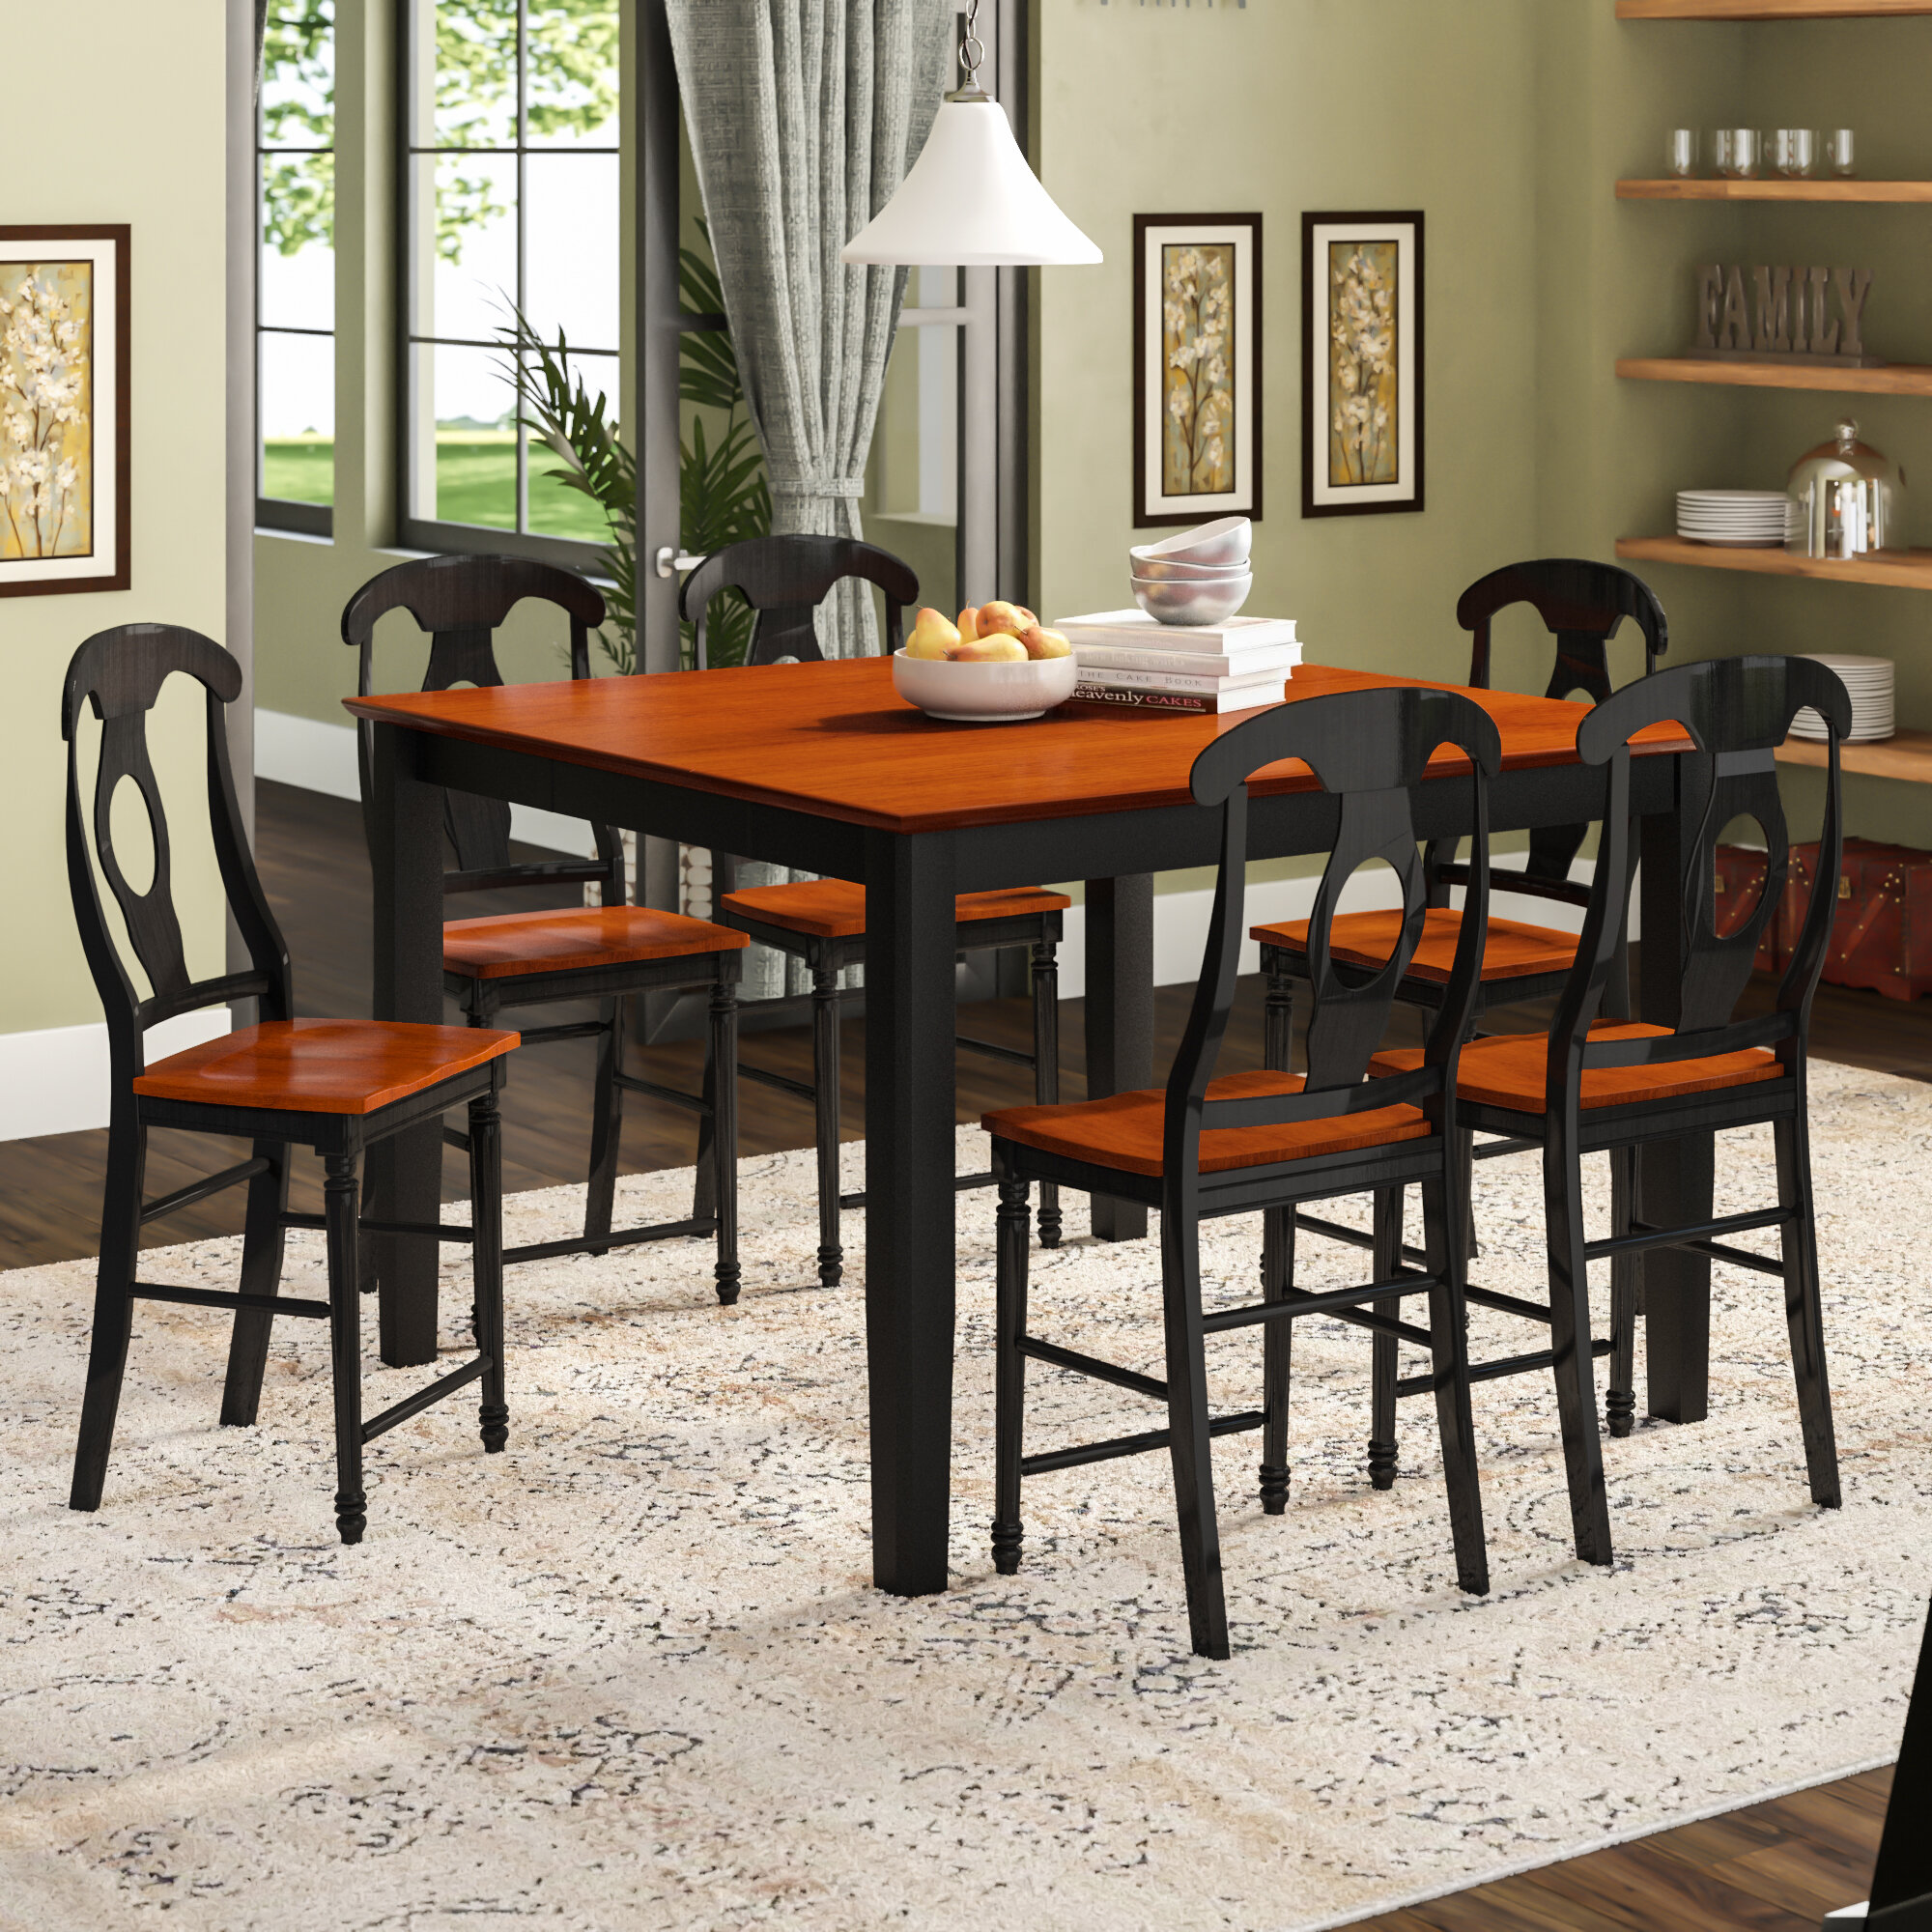 Fabulous Krull 7 Piece Counter Height Pub Table Set Onthecornerstone Fun Painted Chair Ideas Images Onthecornerstoneorg